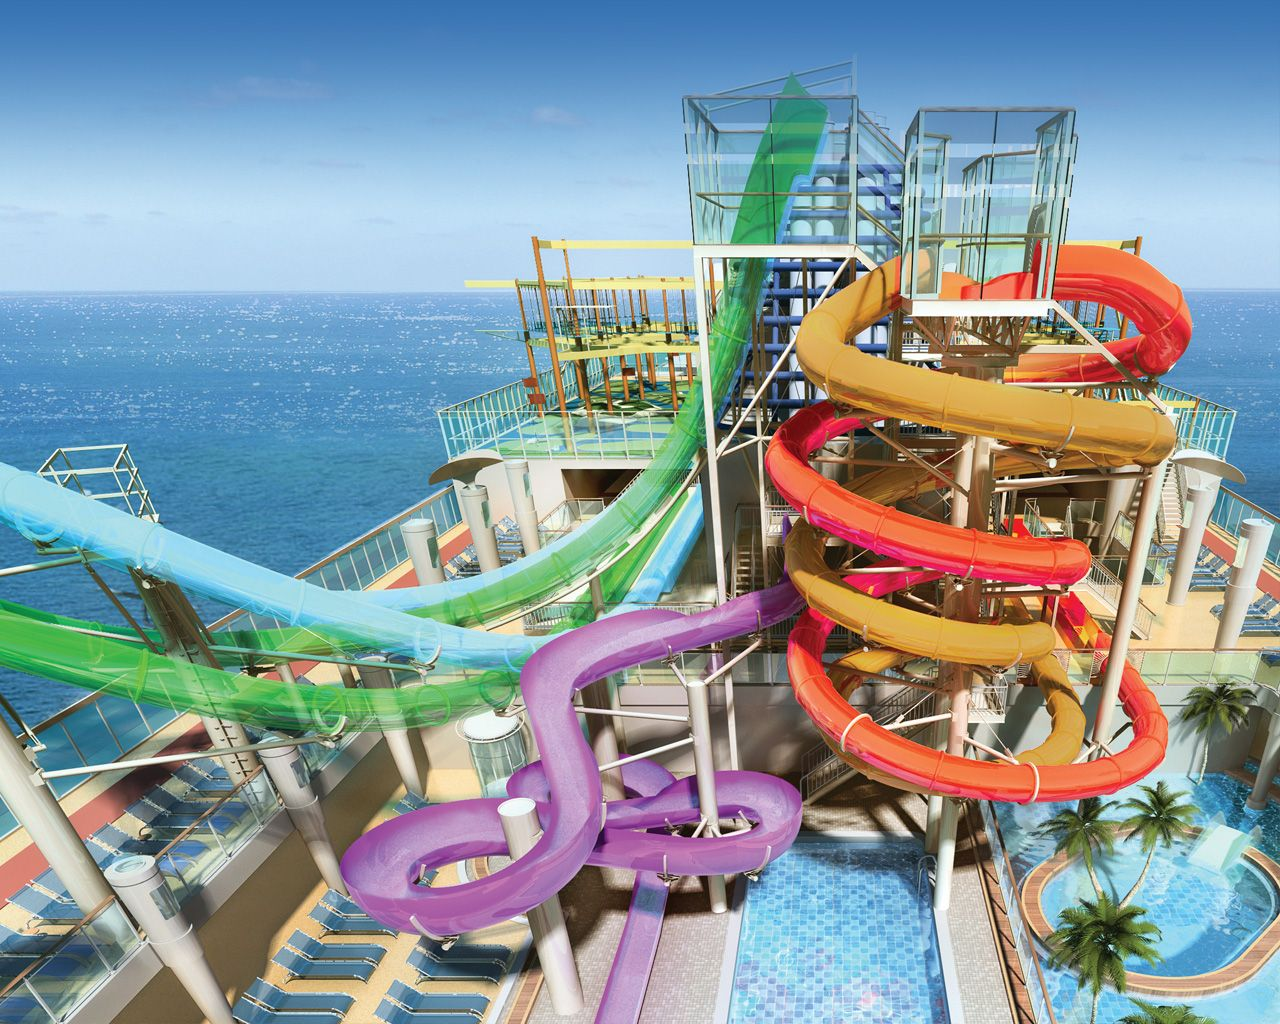 Norwegian Getaway Water Park Images Google Search - Roller coaster on a cruise ship